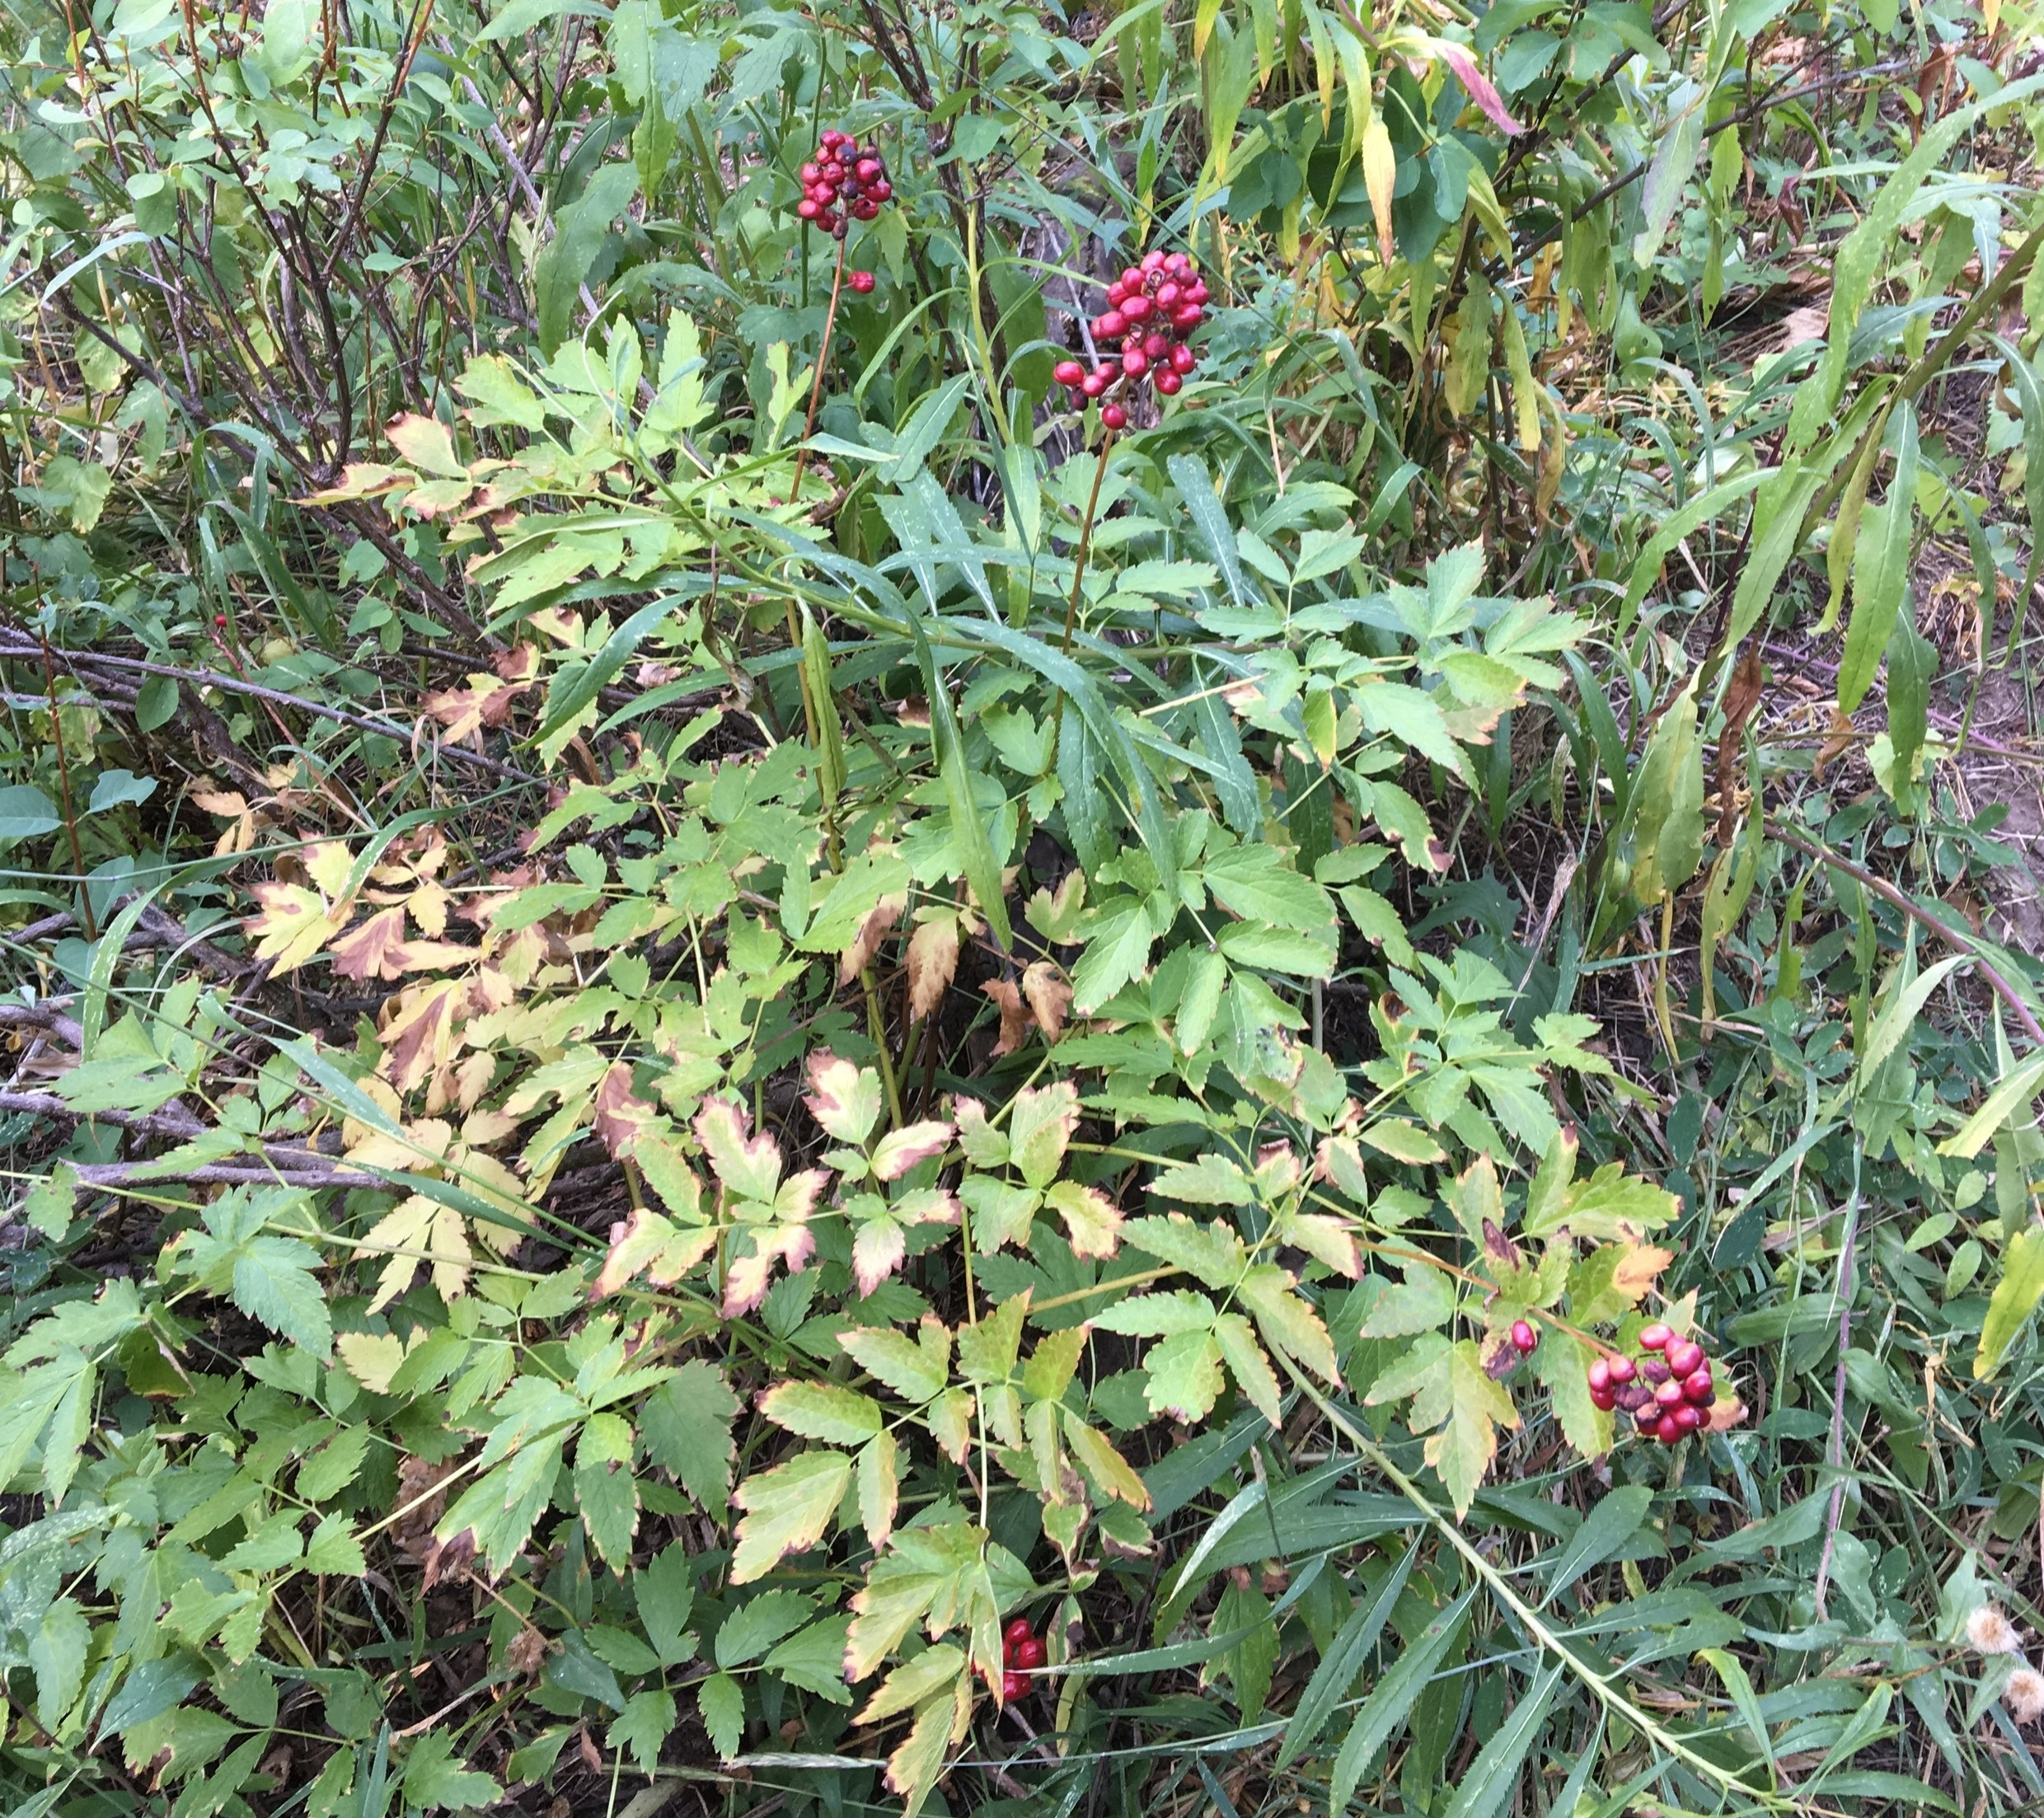 Berries on the plant -